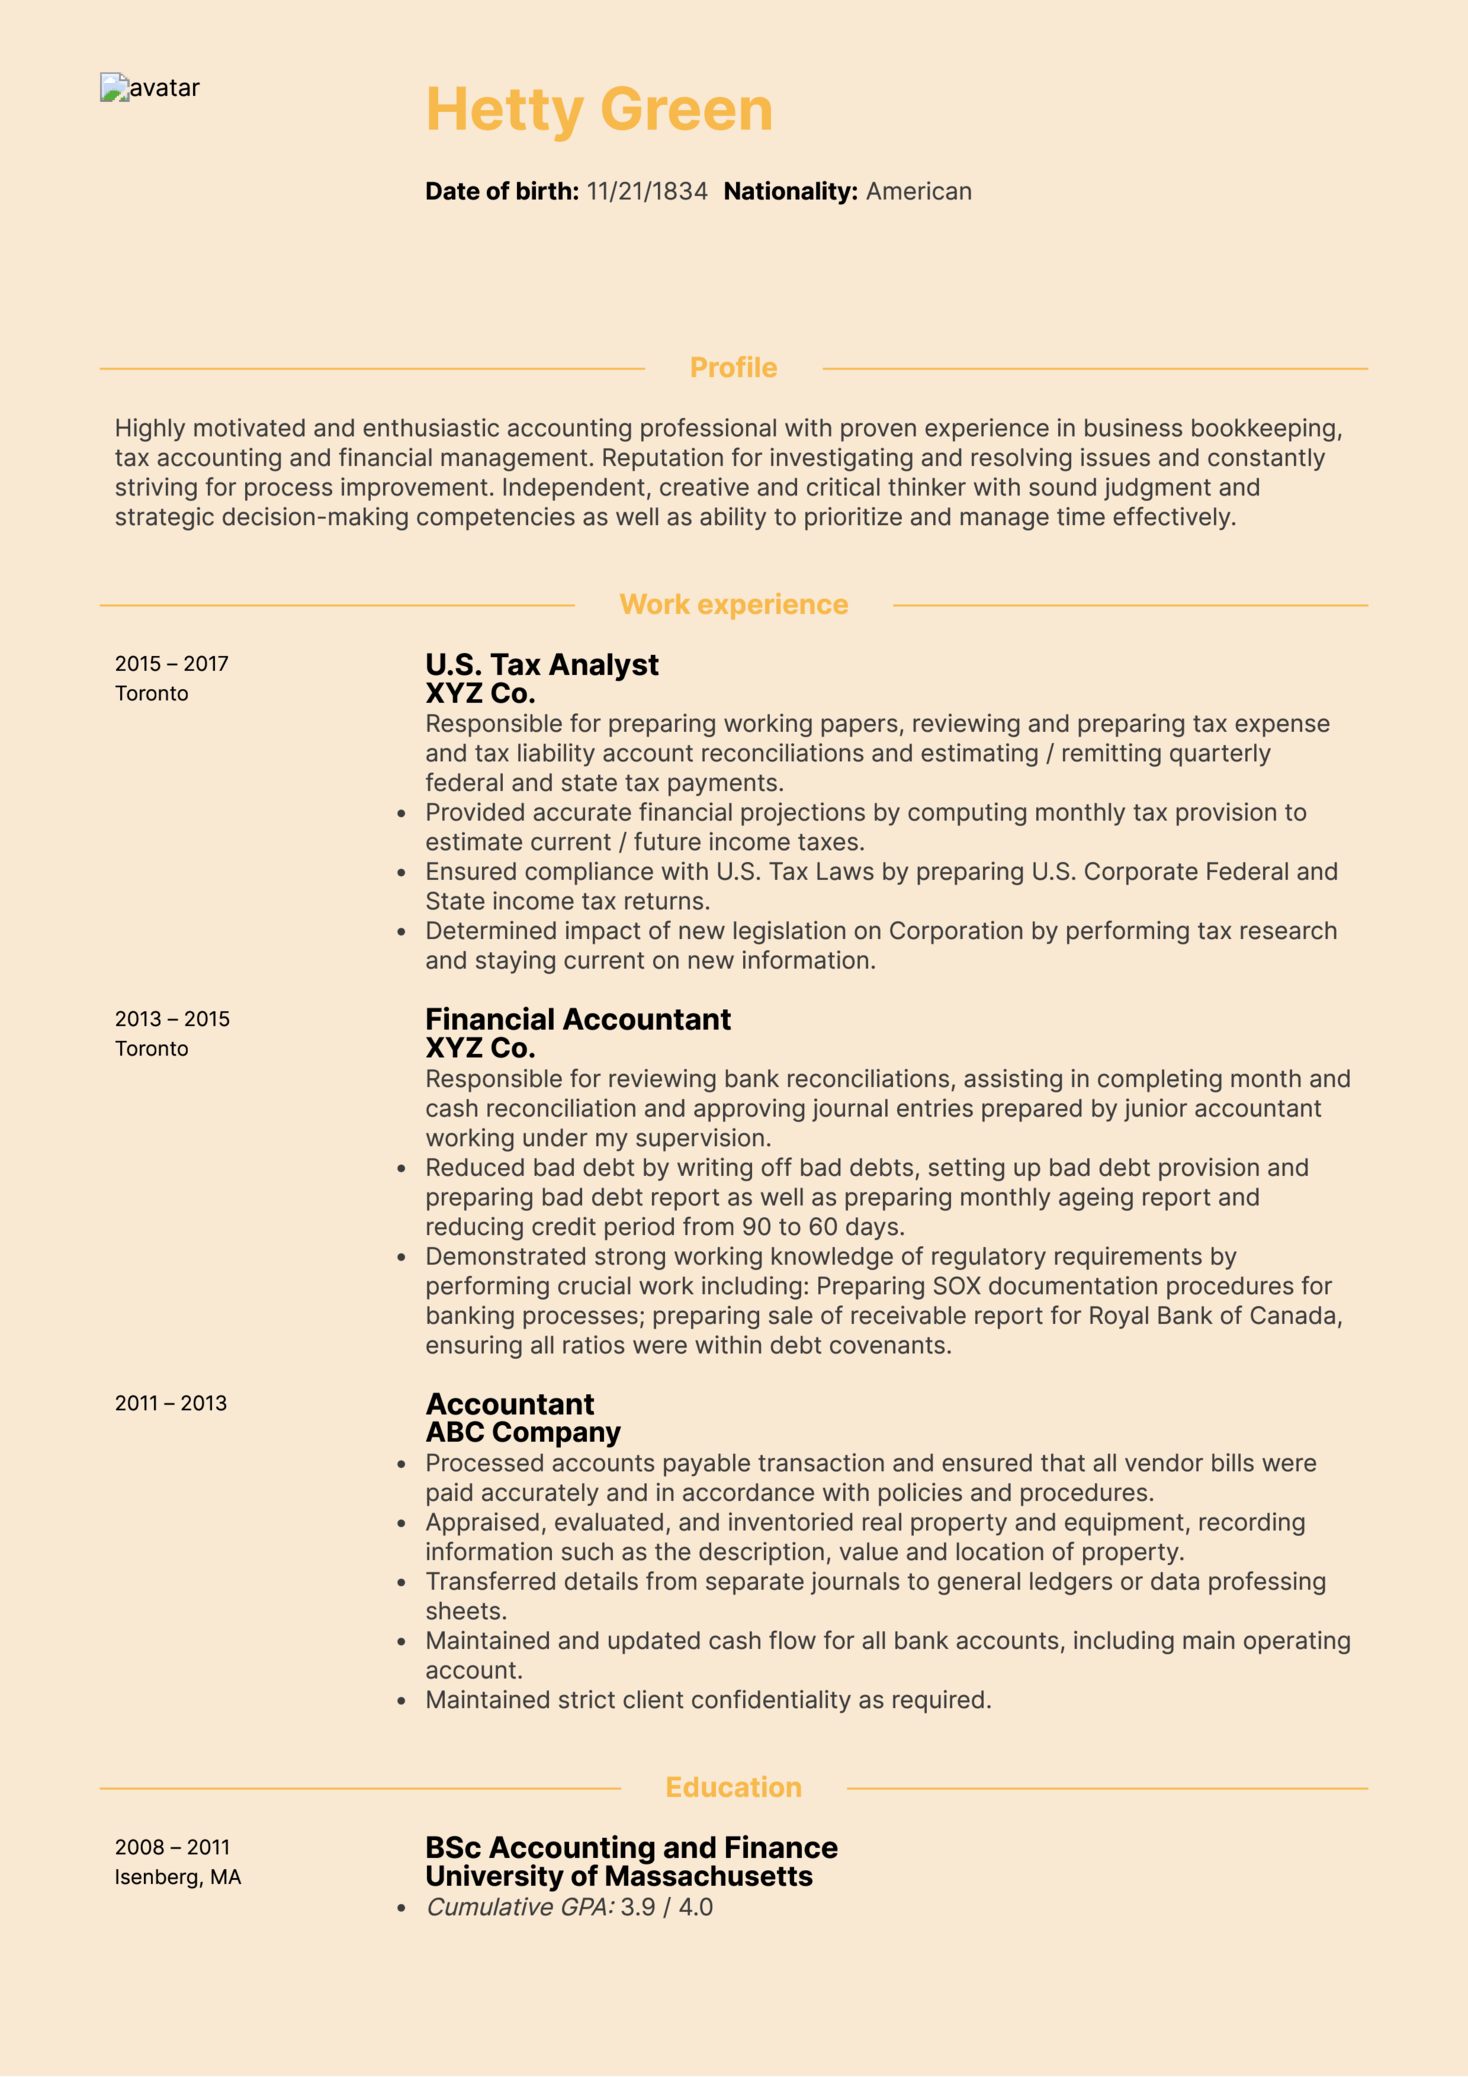 CPA Tax Accountant Resume Sample (Part 1)